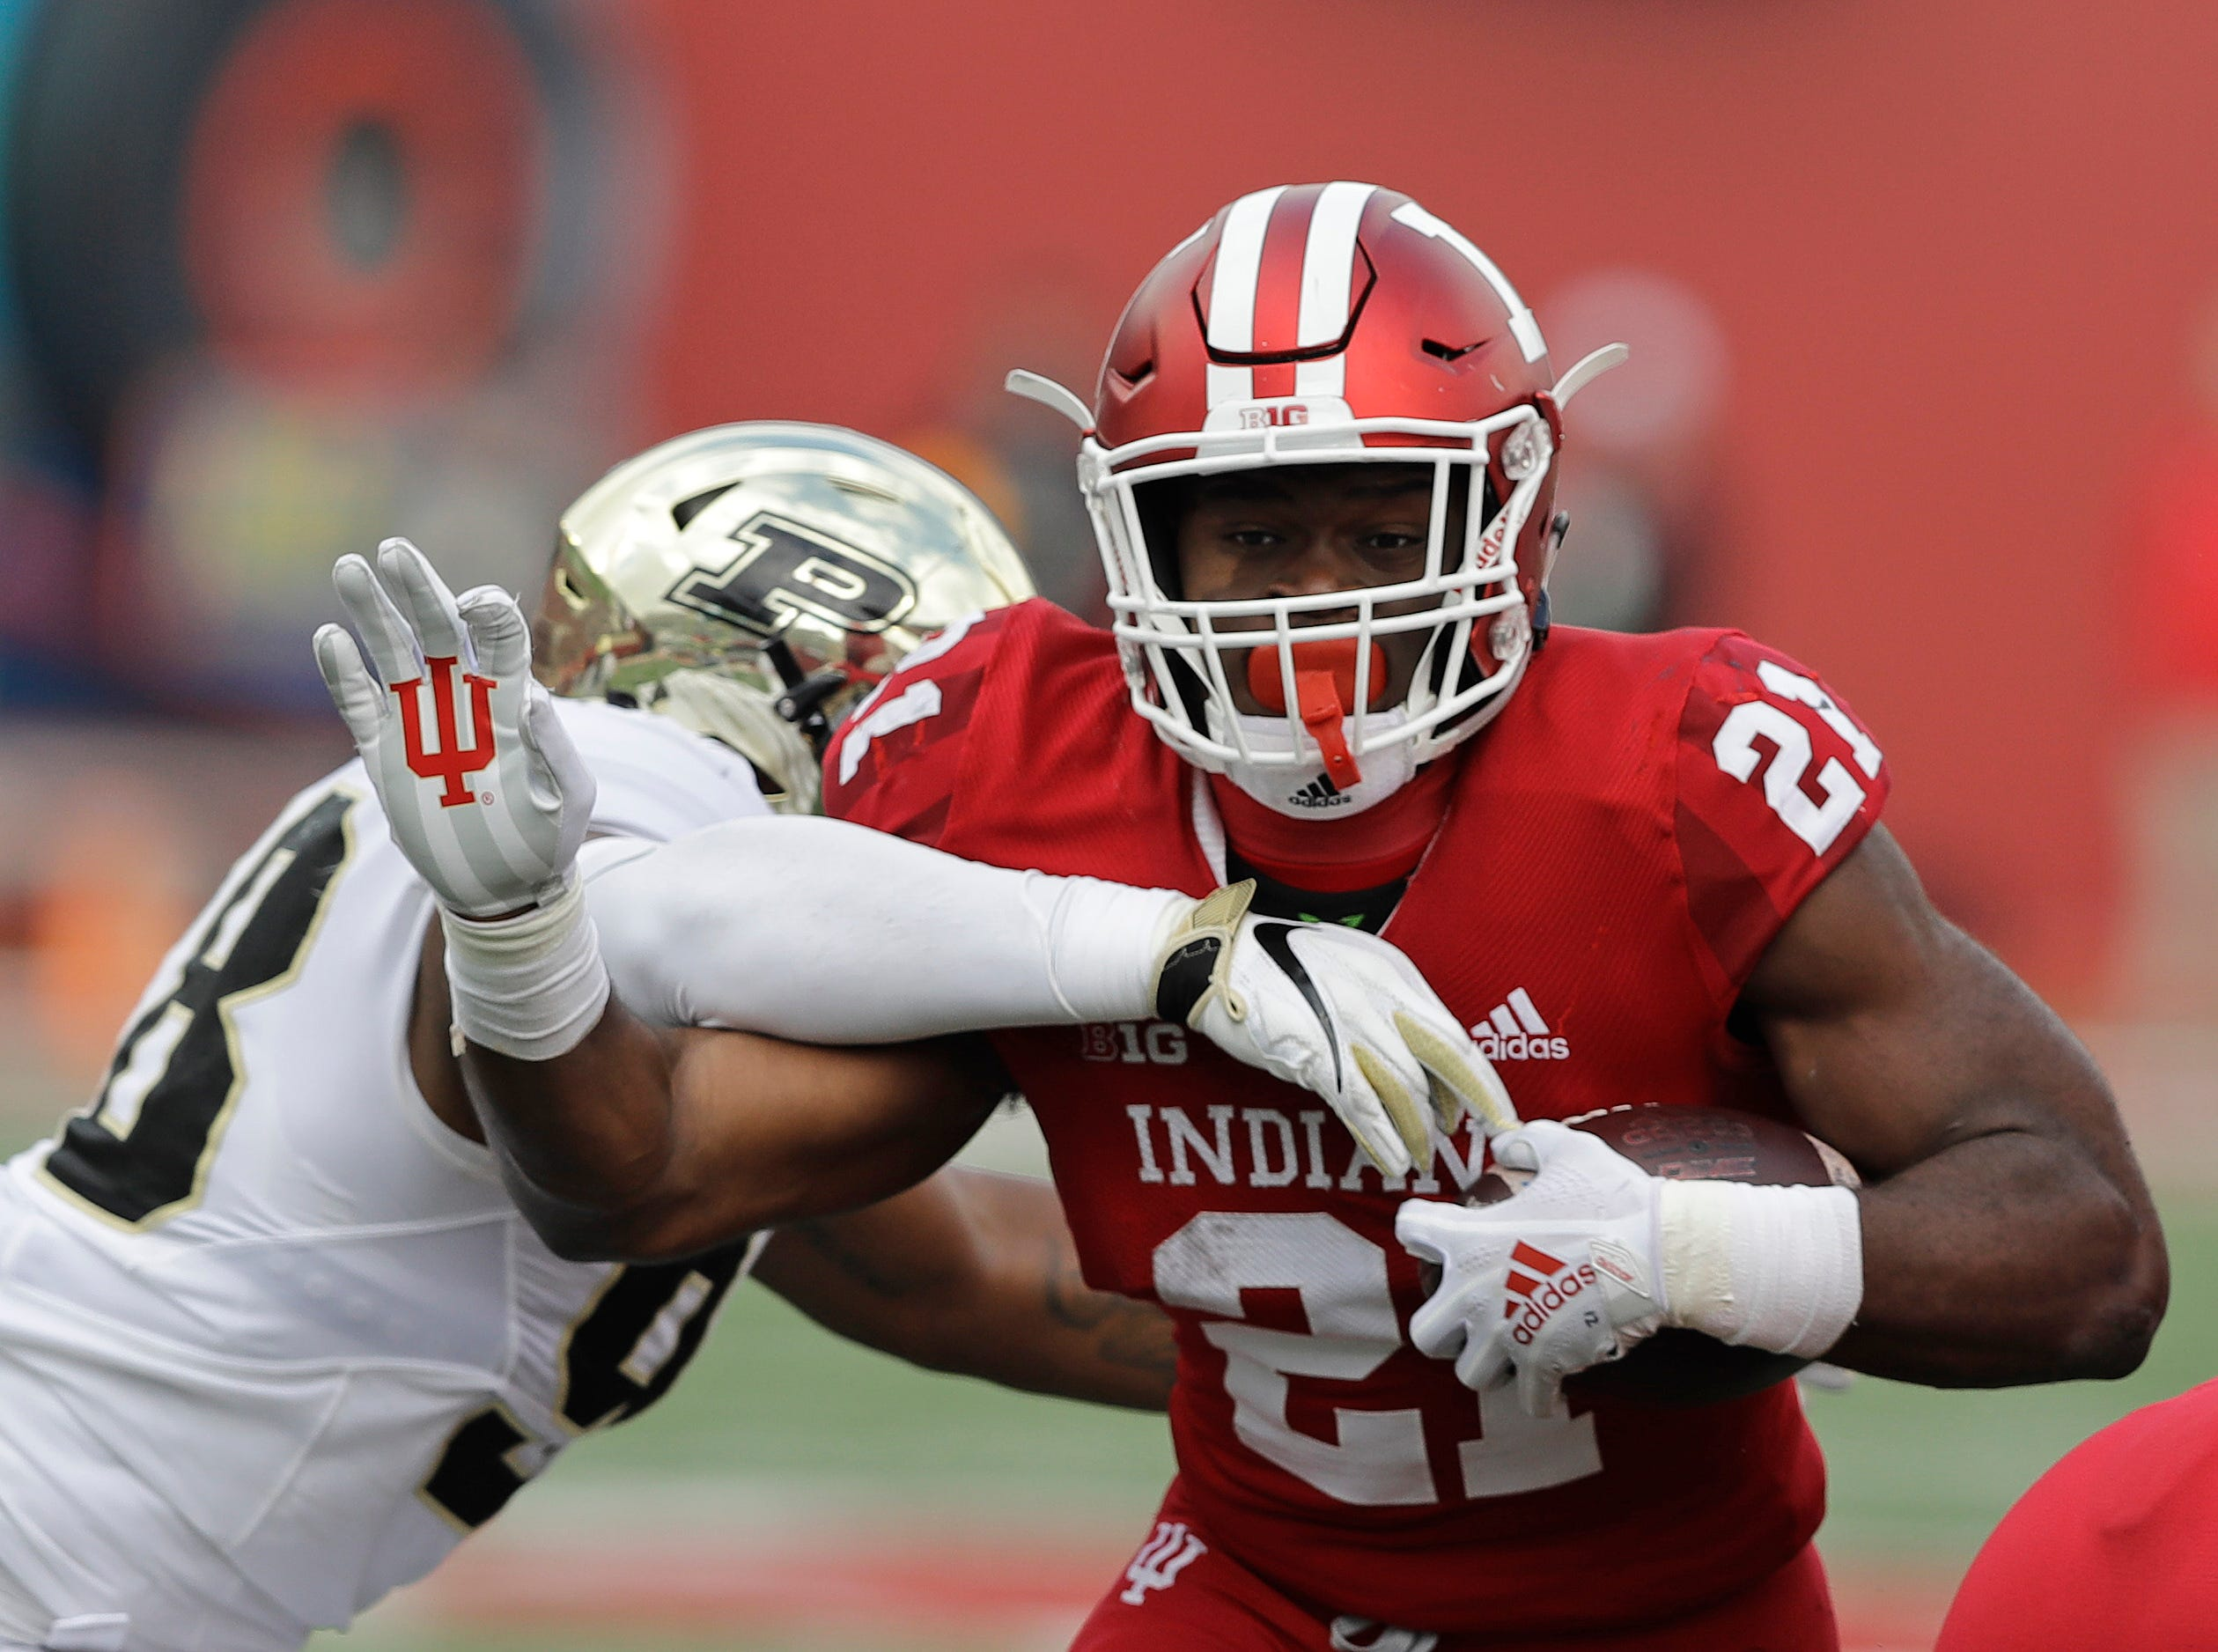 Indiana running back Stevie Scott (21) runs out of the tackle of Purdue's Kai Higgins during the first half of an NCAA college football game, Saturday, Nov. 24, 2018, in Bloomington, Ind. (AP Photo/Darron Cummings)